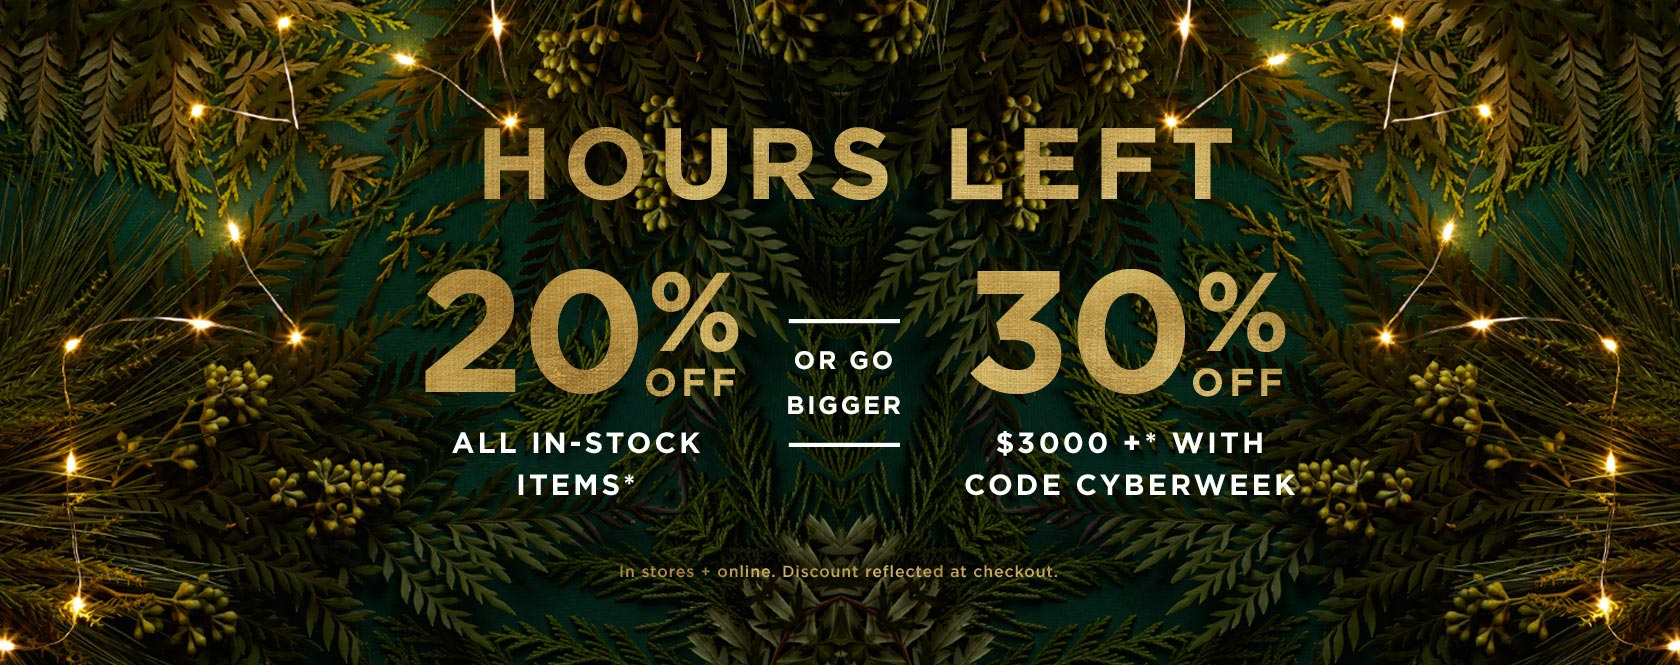 Hours Left! 20% Off In-Stock Items. Prices As Marked. Or 30% Off $3000+ With Code CYBERWEEK